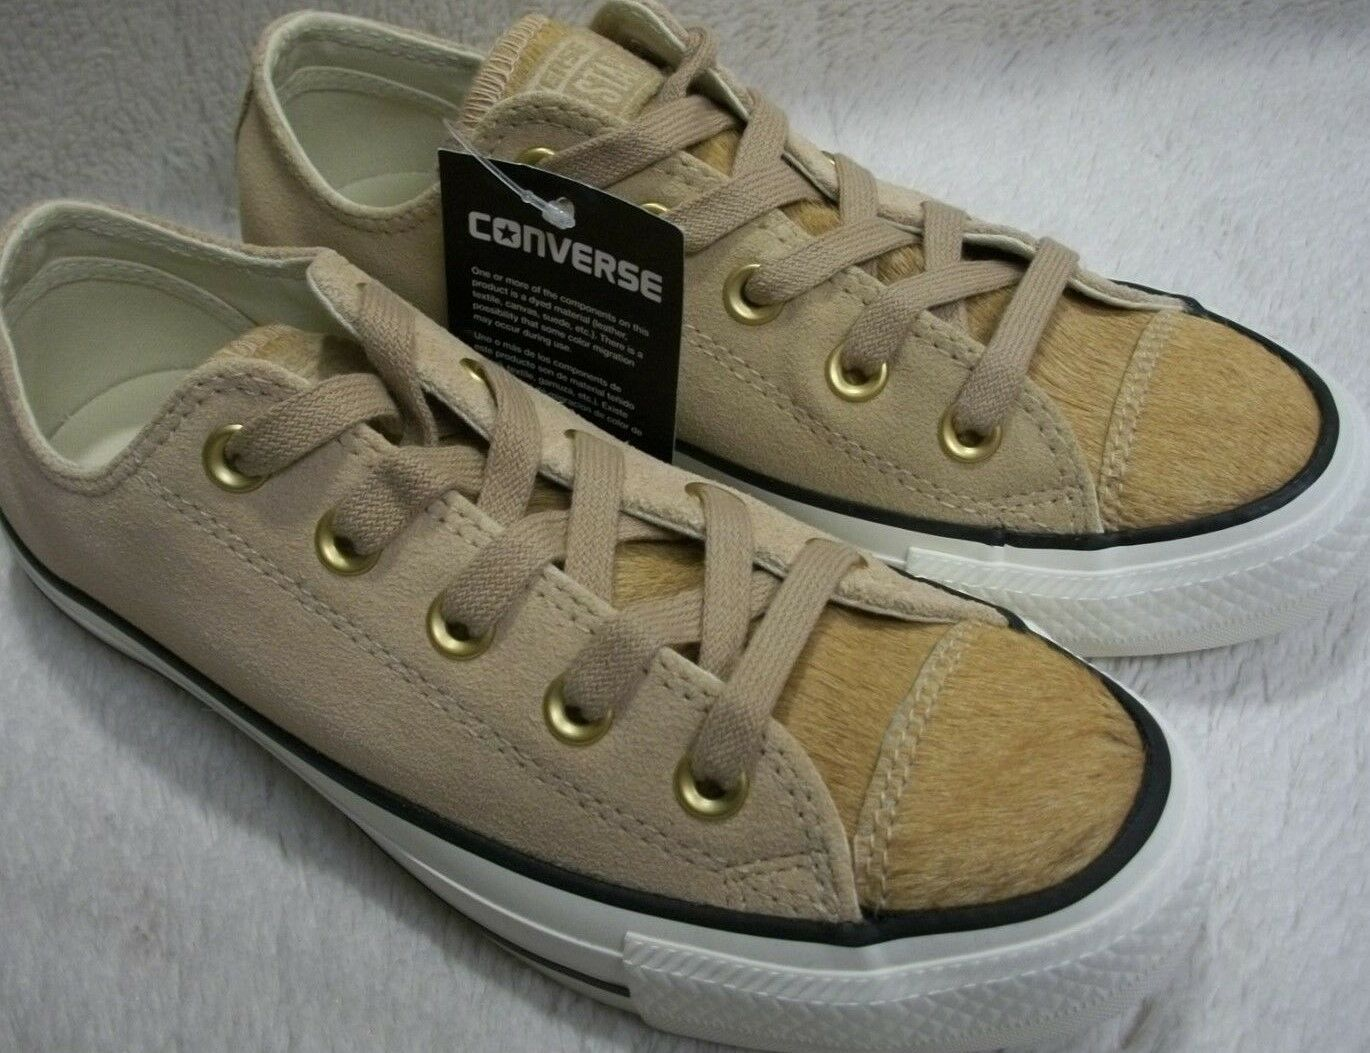 Converse 157665C CTAS OX Light Fawn Pony Hair Men's 3 - Women's 5 Mfg Ret $85